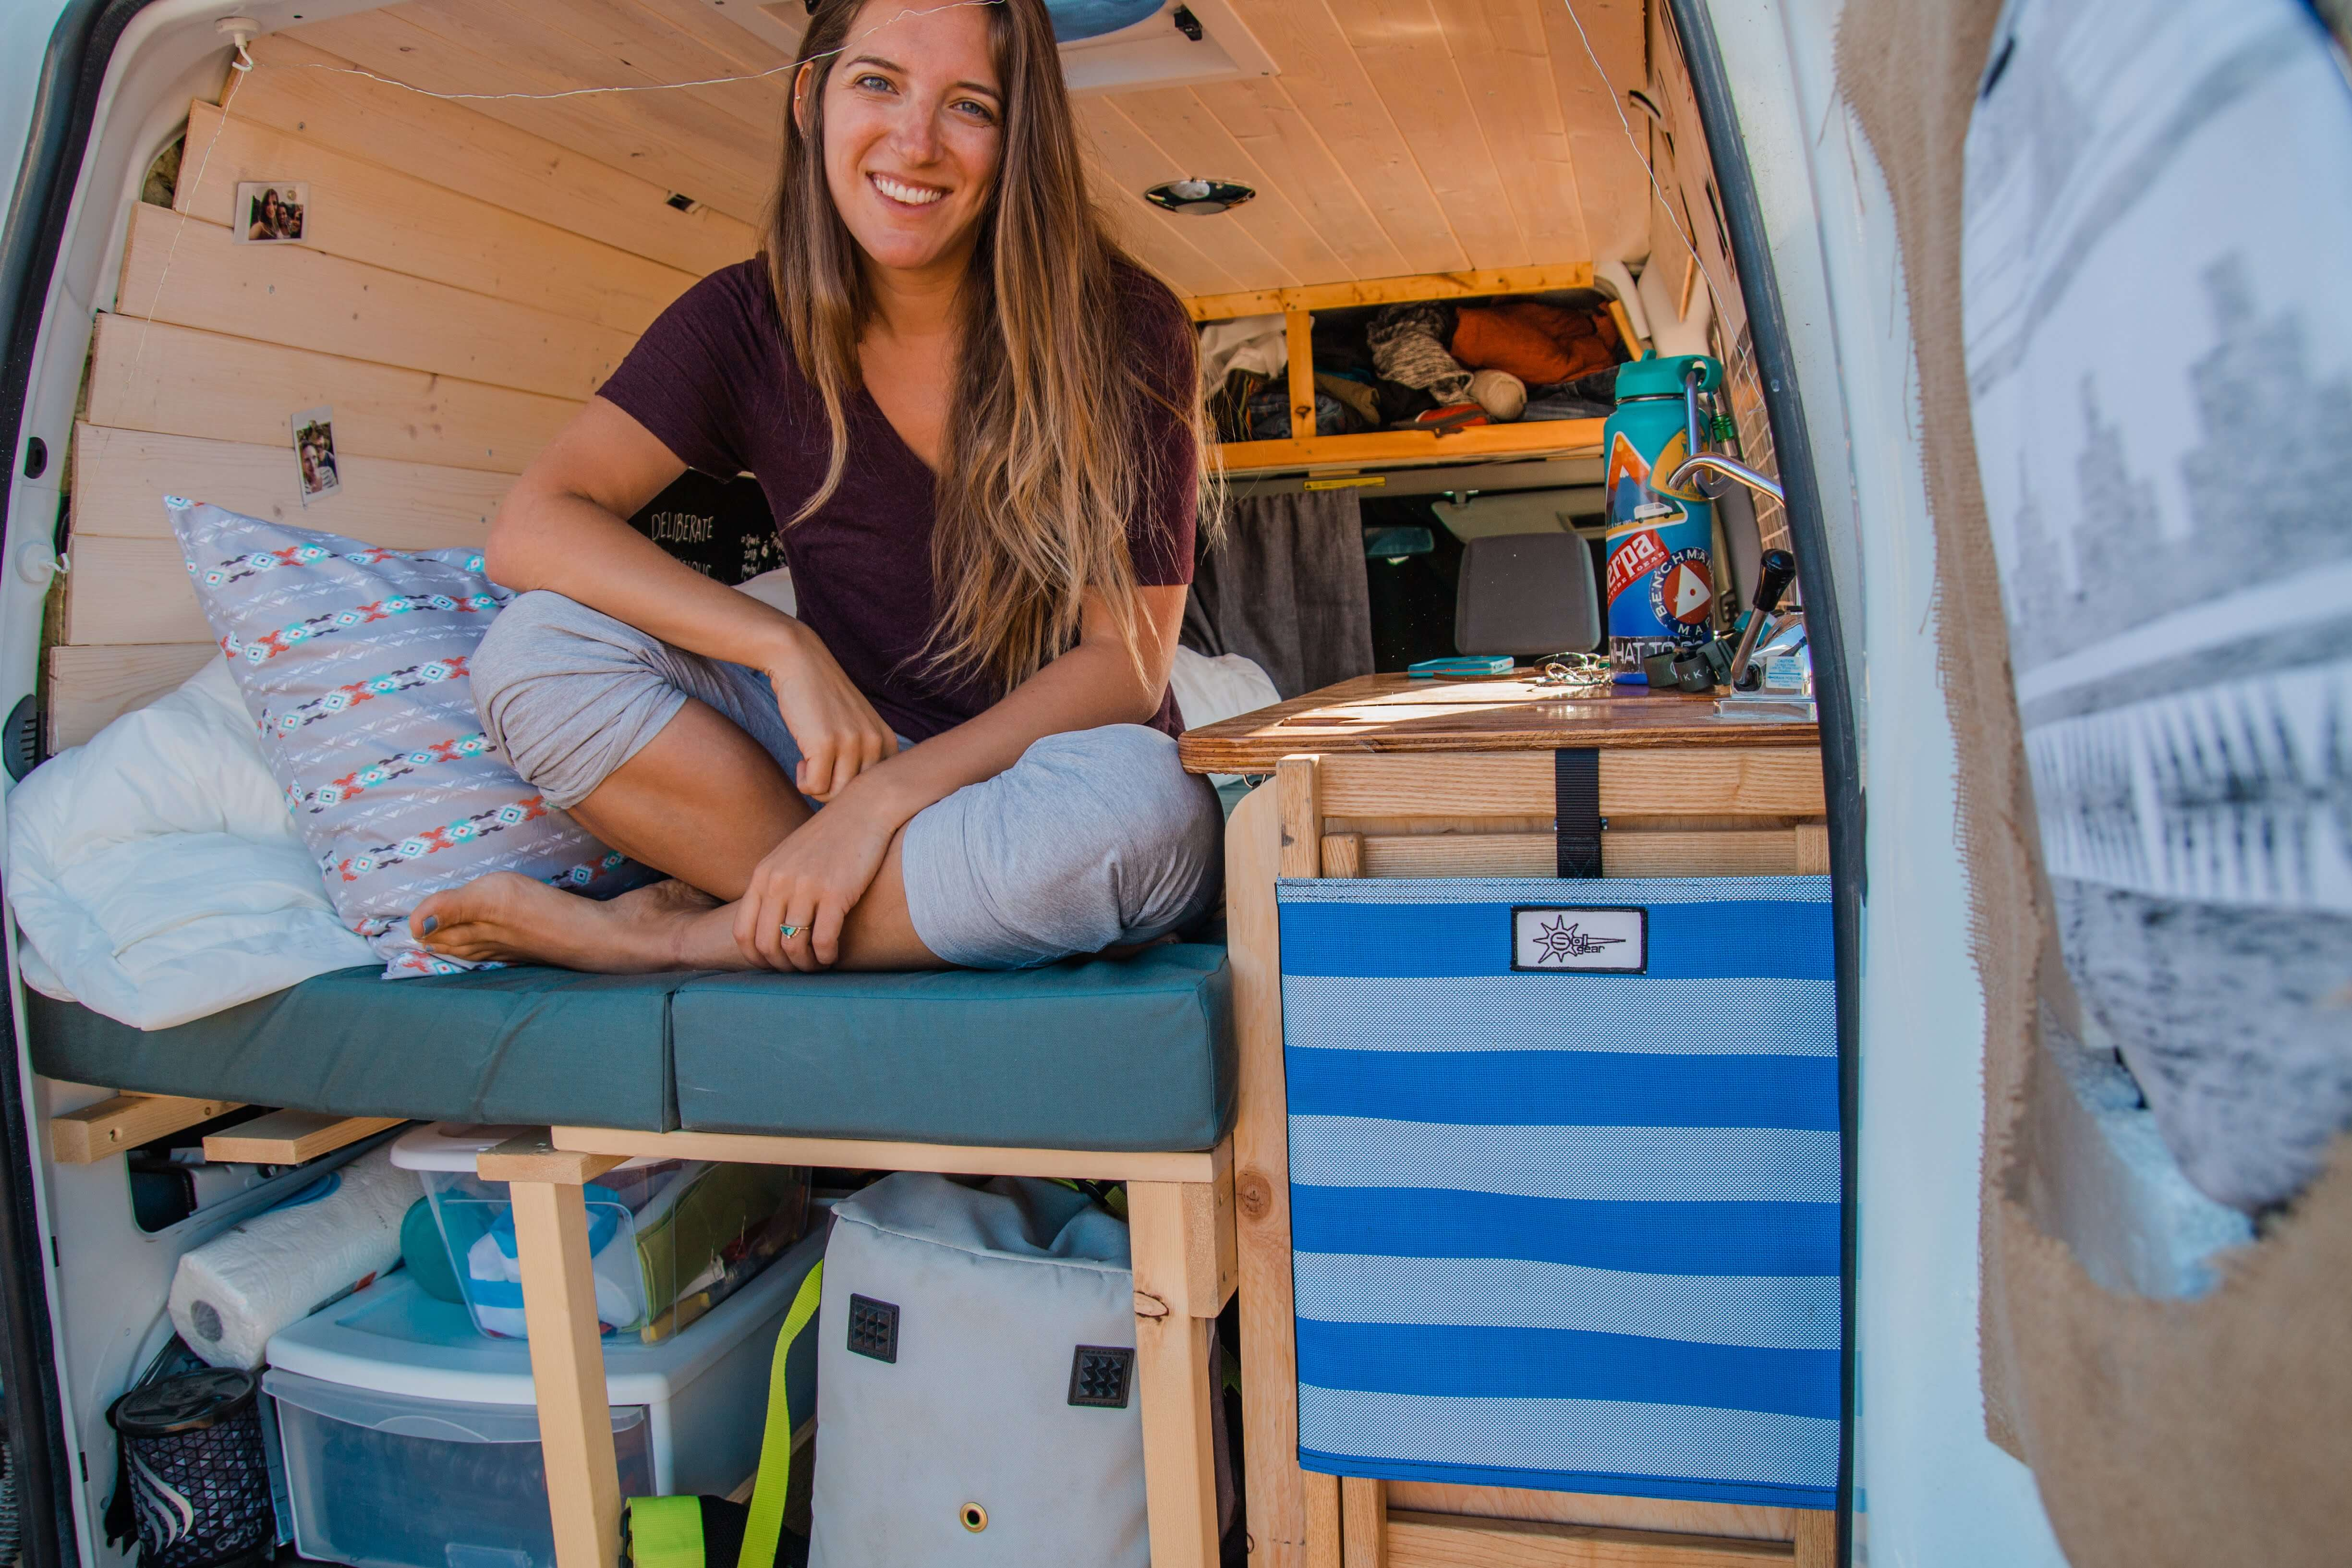 solo female van life renovation Instagram couple blog